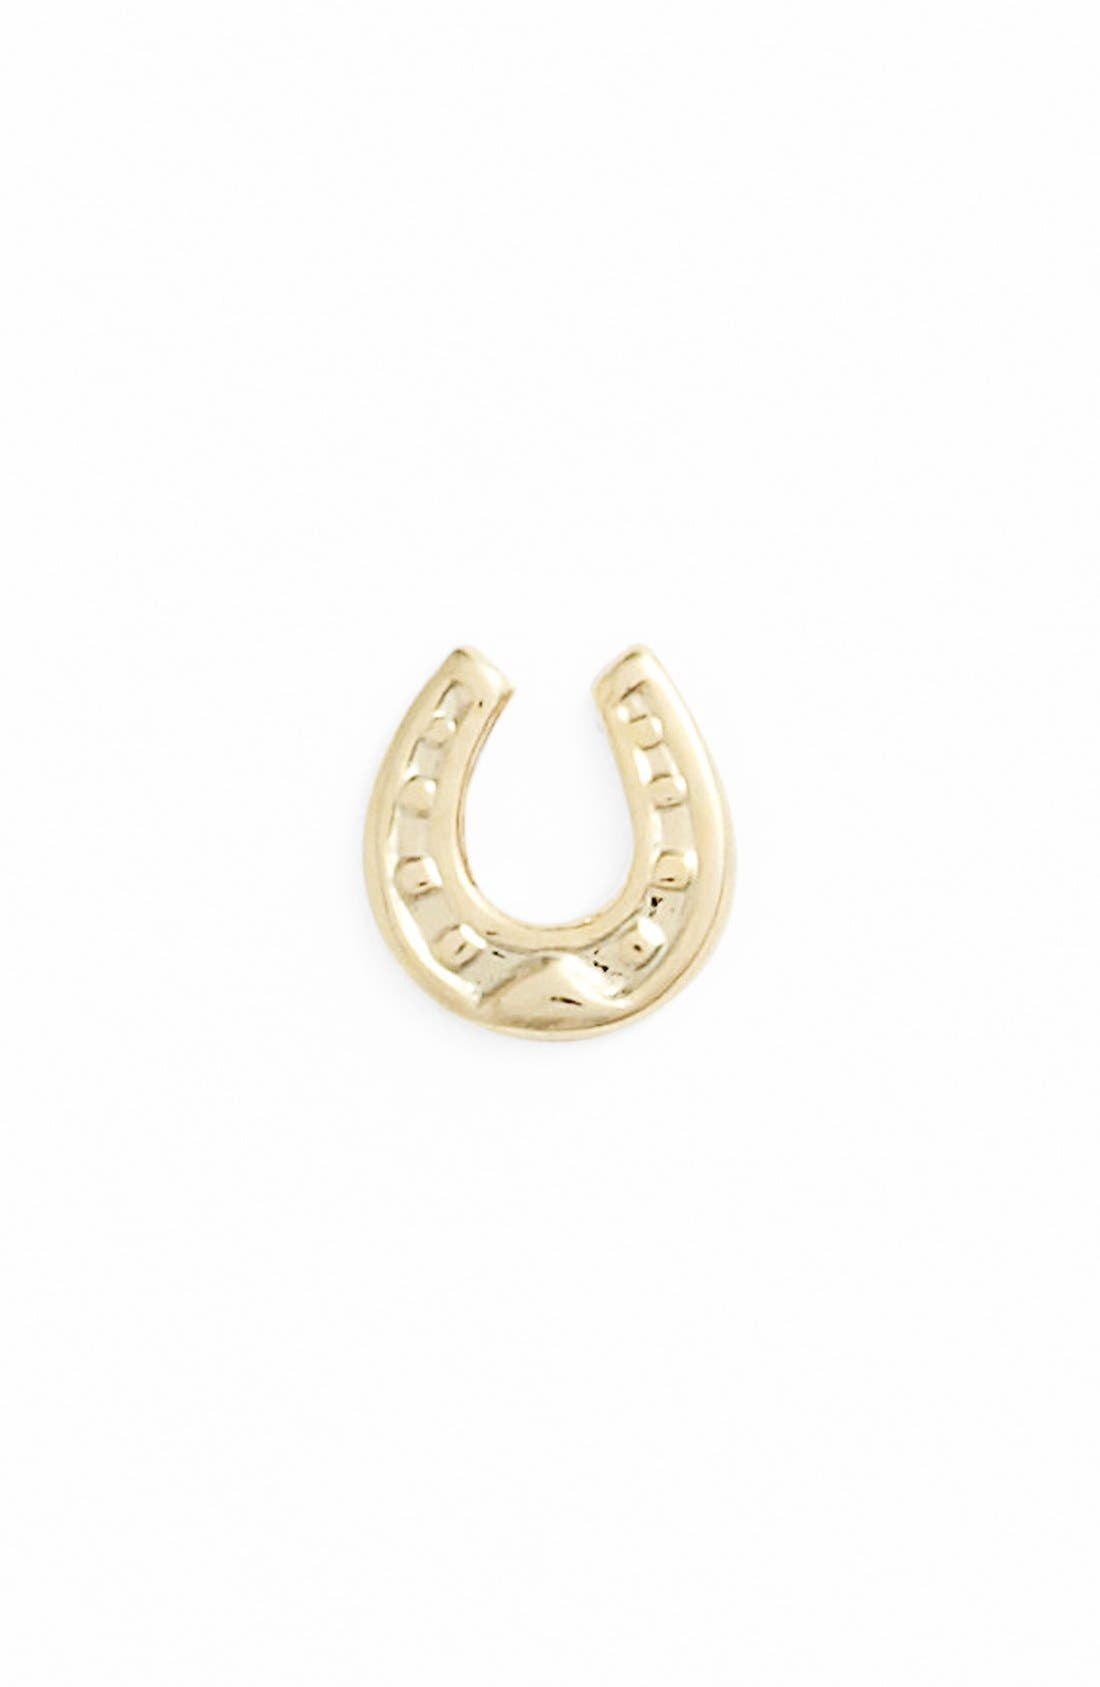 Main Image - Bonnie Jonas 'Horseshoe' Stud Earring